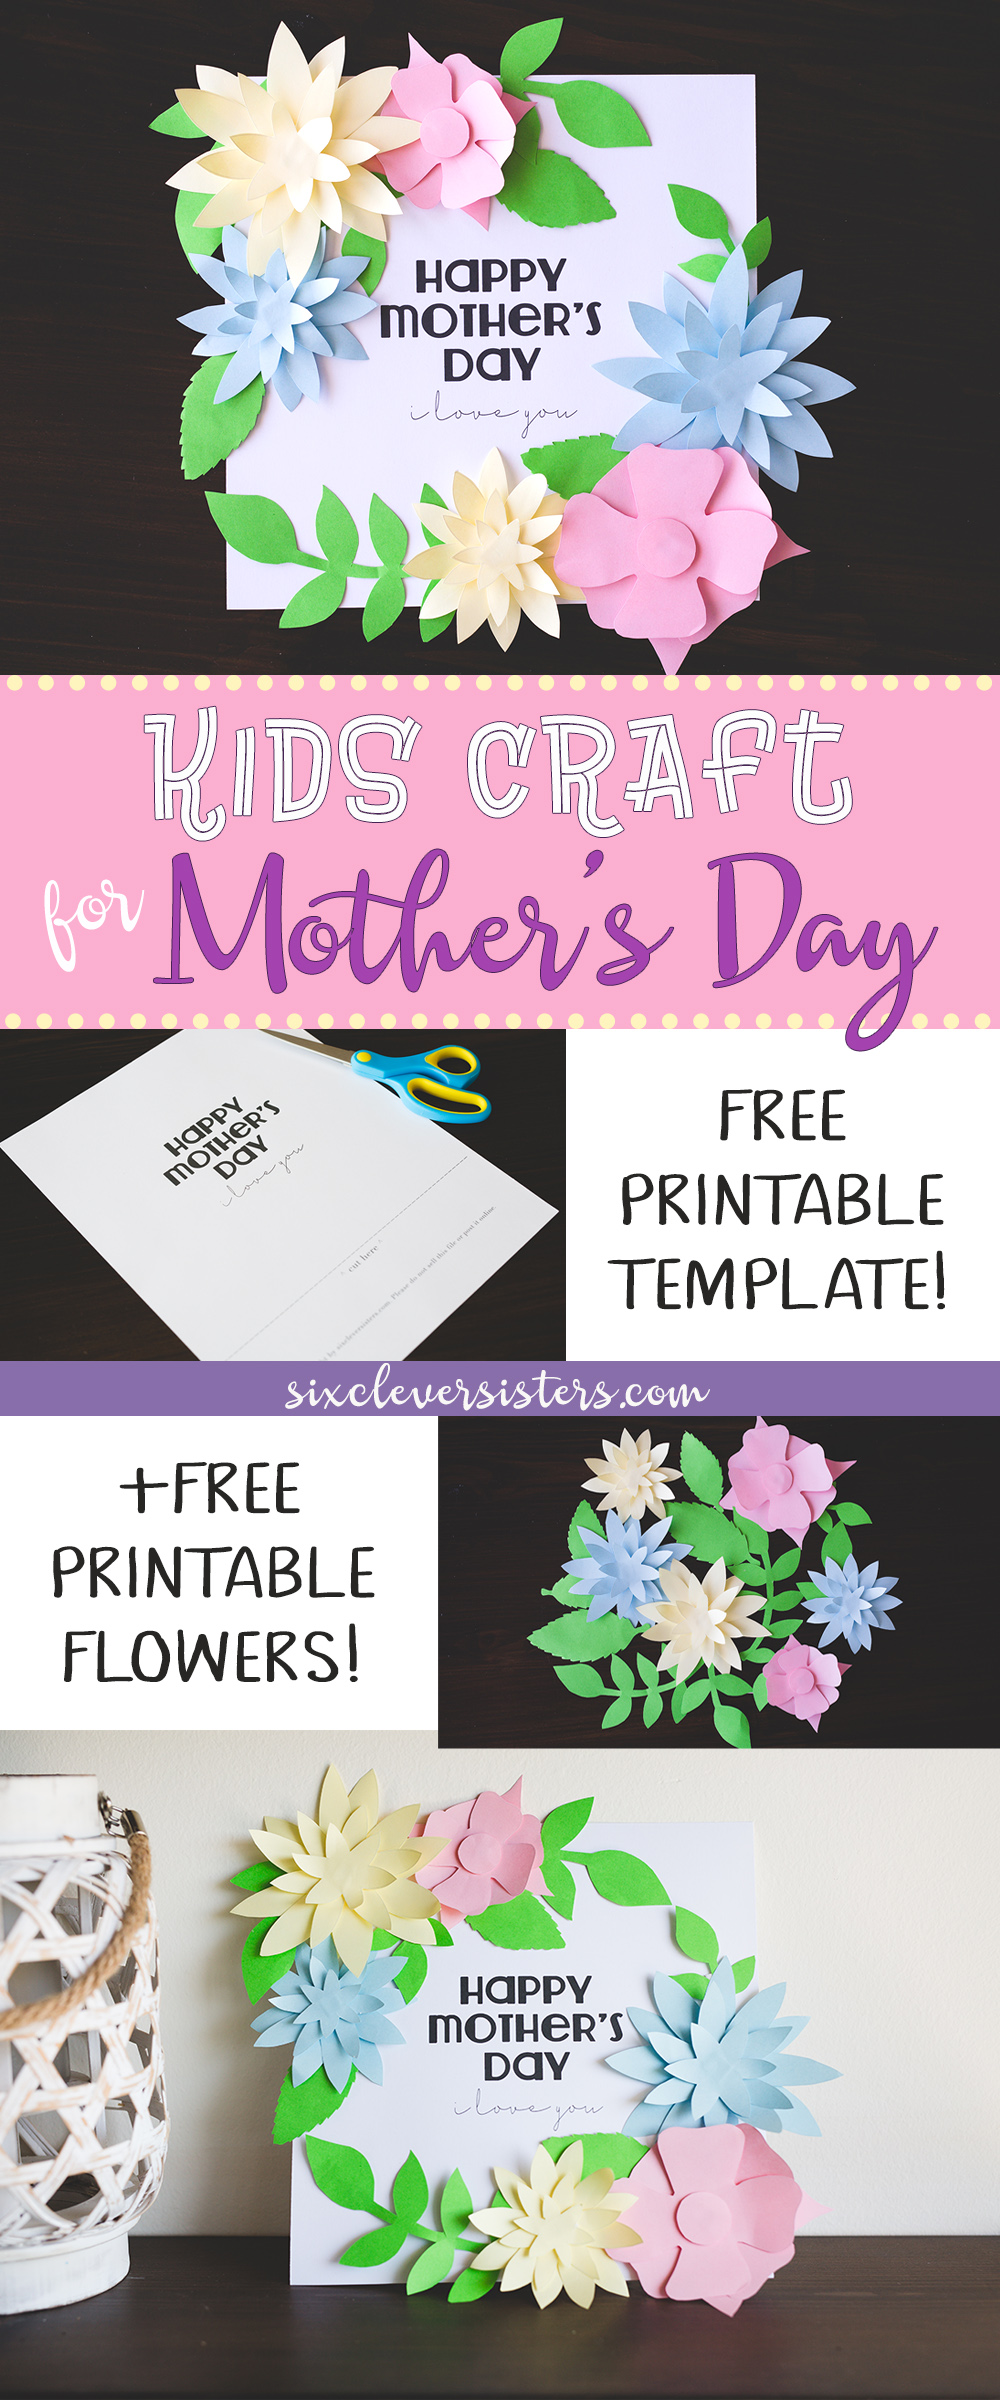 Pleasing Kids Free Printable Six Mors Day To Draw Mor S Day Video Day Kids Craft Day Crafts Kids Day Craftideas Day Crafts photos Mothers Day Picture